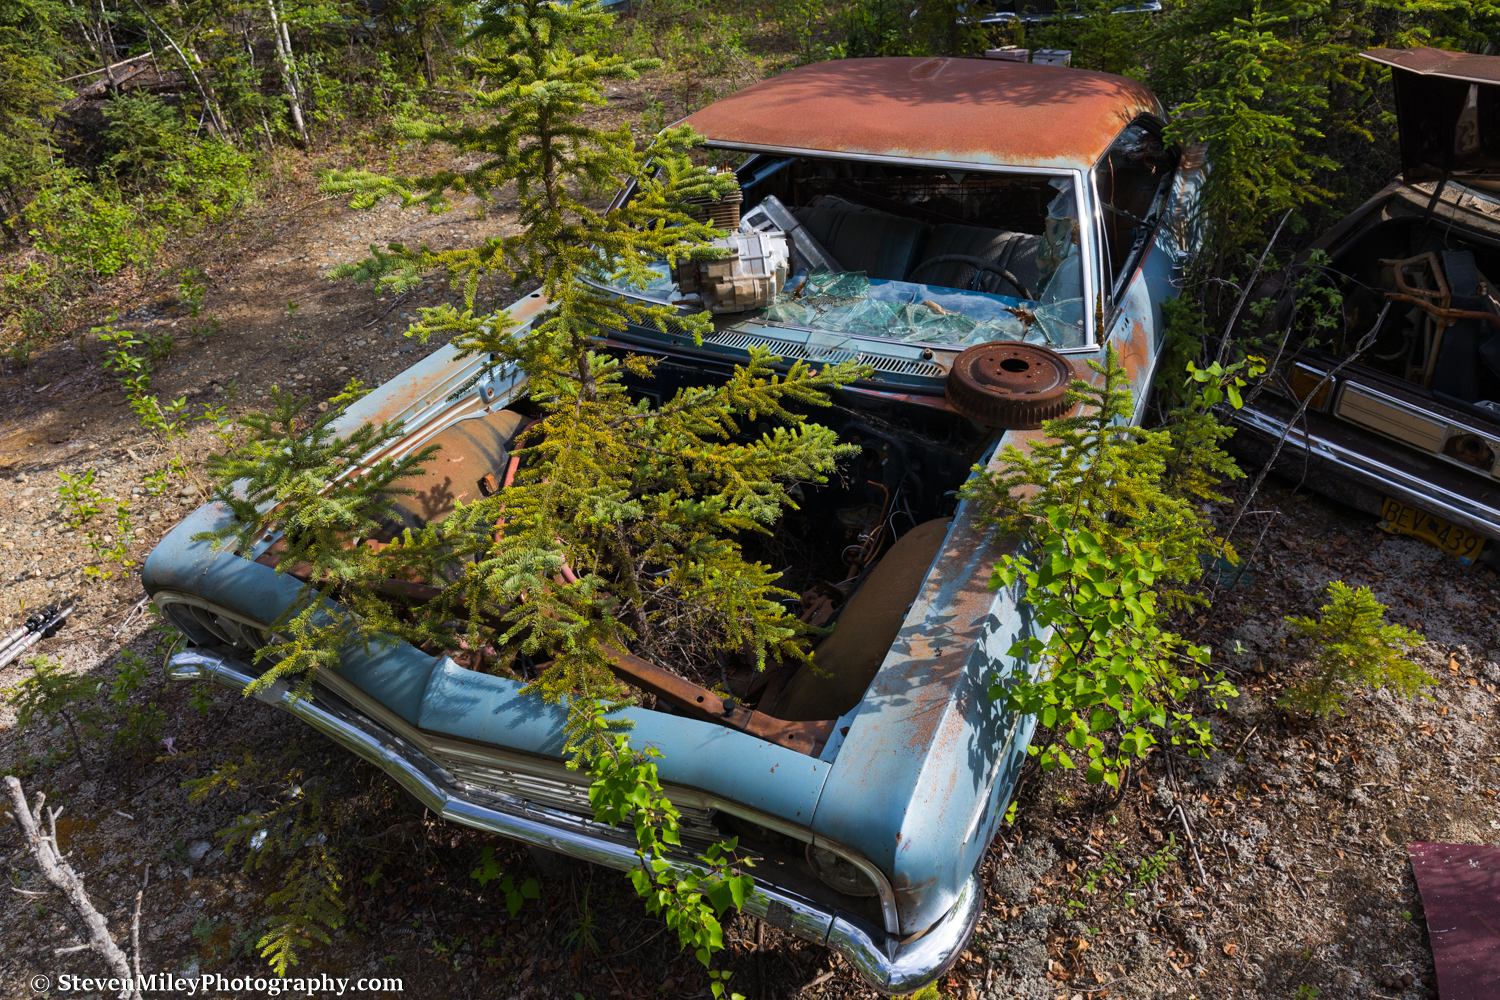 An eight-foot spruce tree grows through an old Chevy Impala.